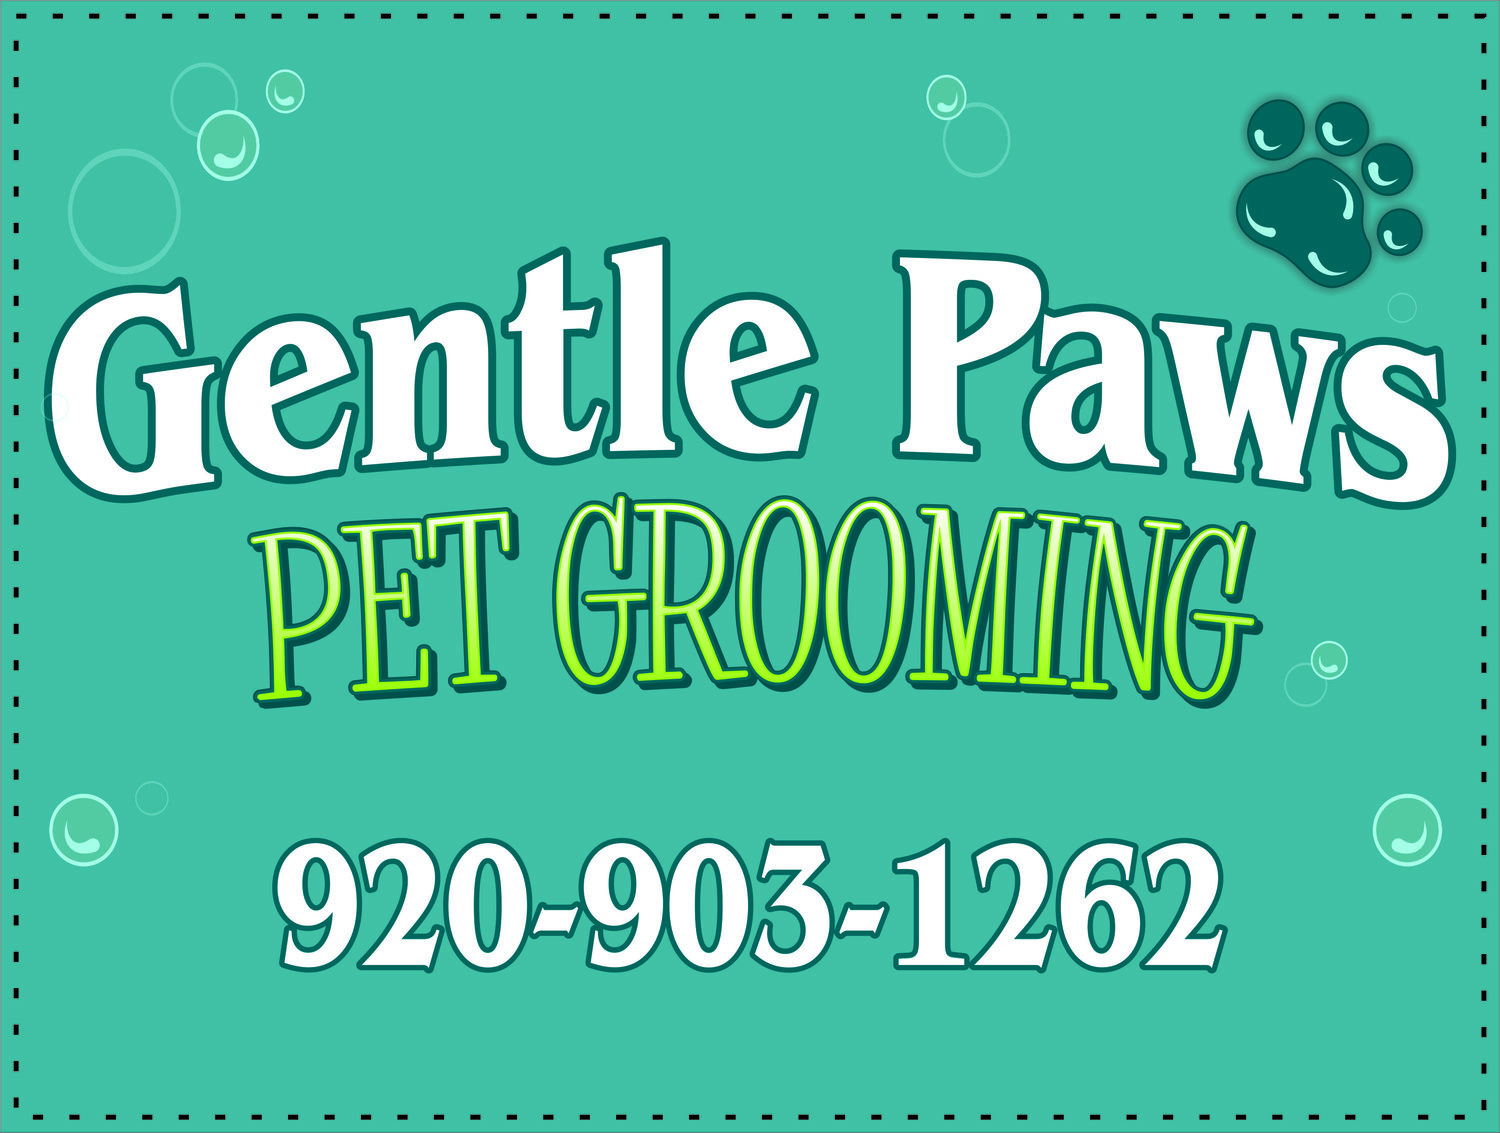 Gentle Paws Pet Grooming - Appleton WI